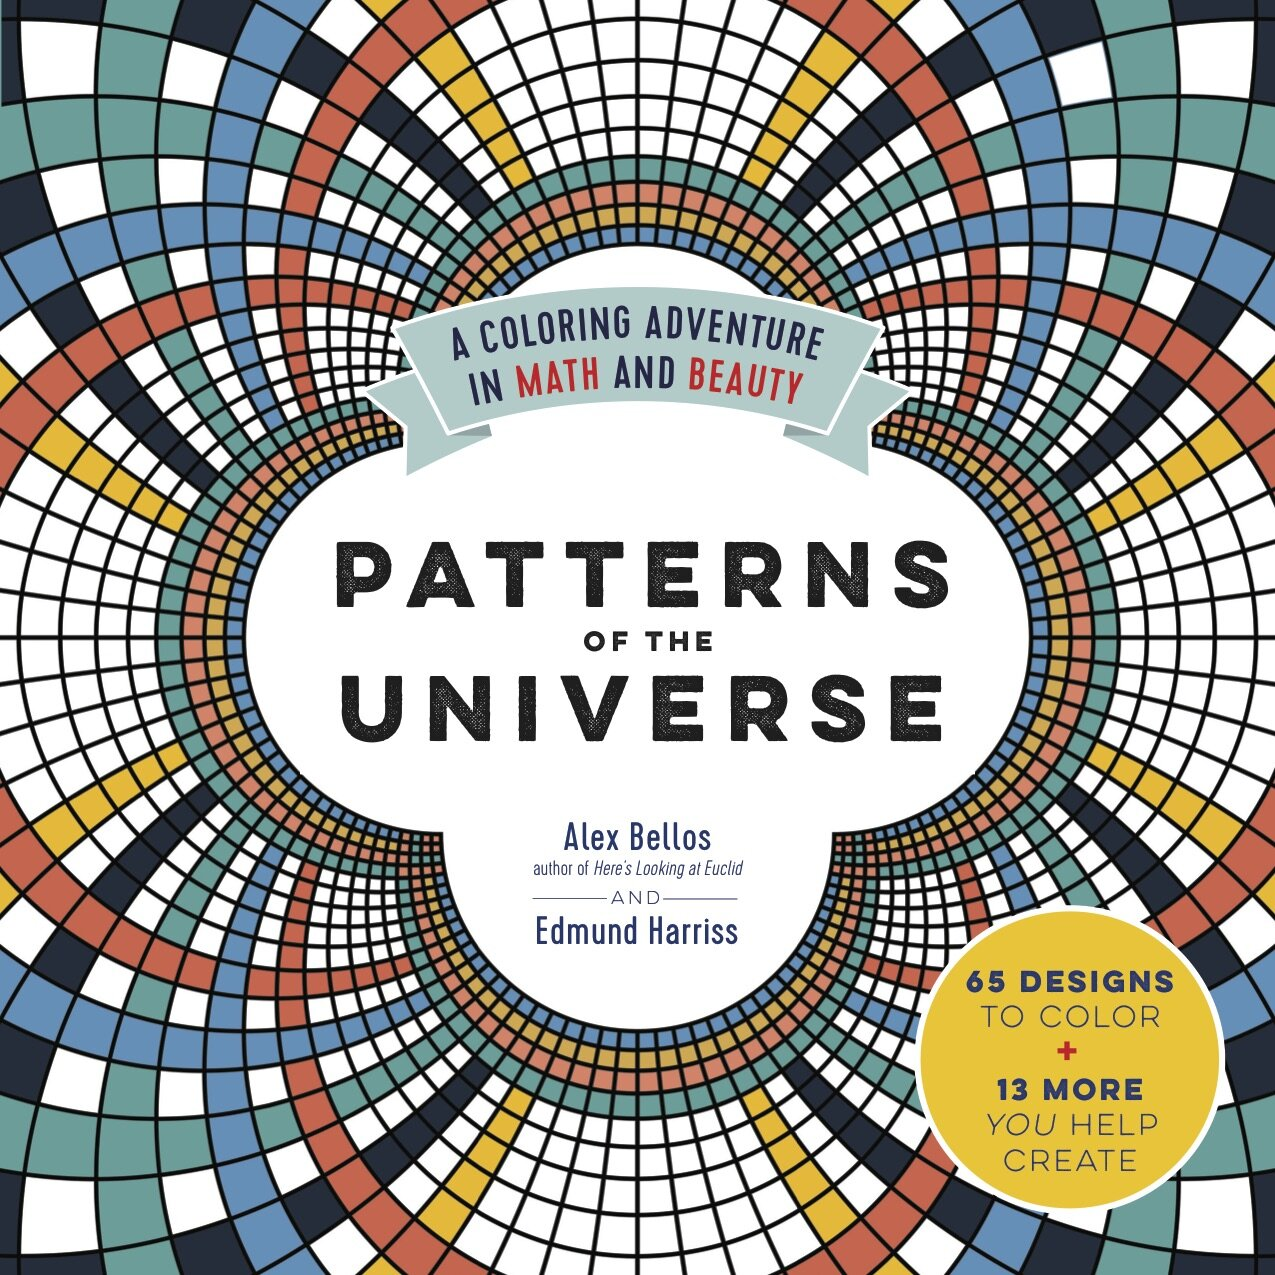 PATTERNS - More than 50 images from fields including Voronoi diagrams, transformations, knots, polyhedra, Lissajous figures, the golden ration, space-filling curves, cellular automata and much more.This book was originally called Snowflake, Seashell, Star.